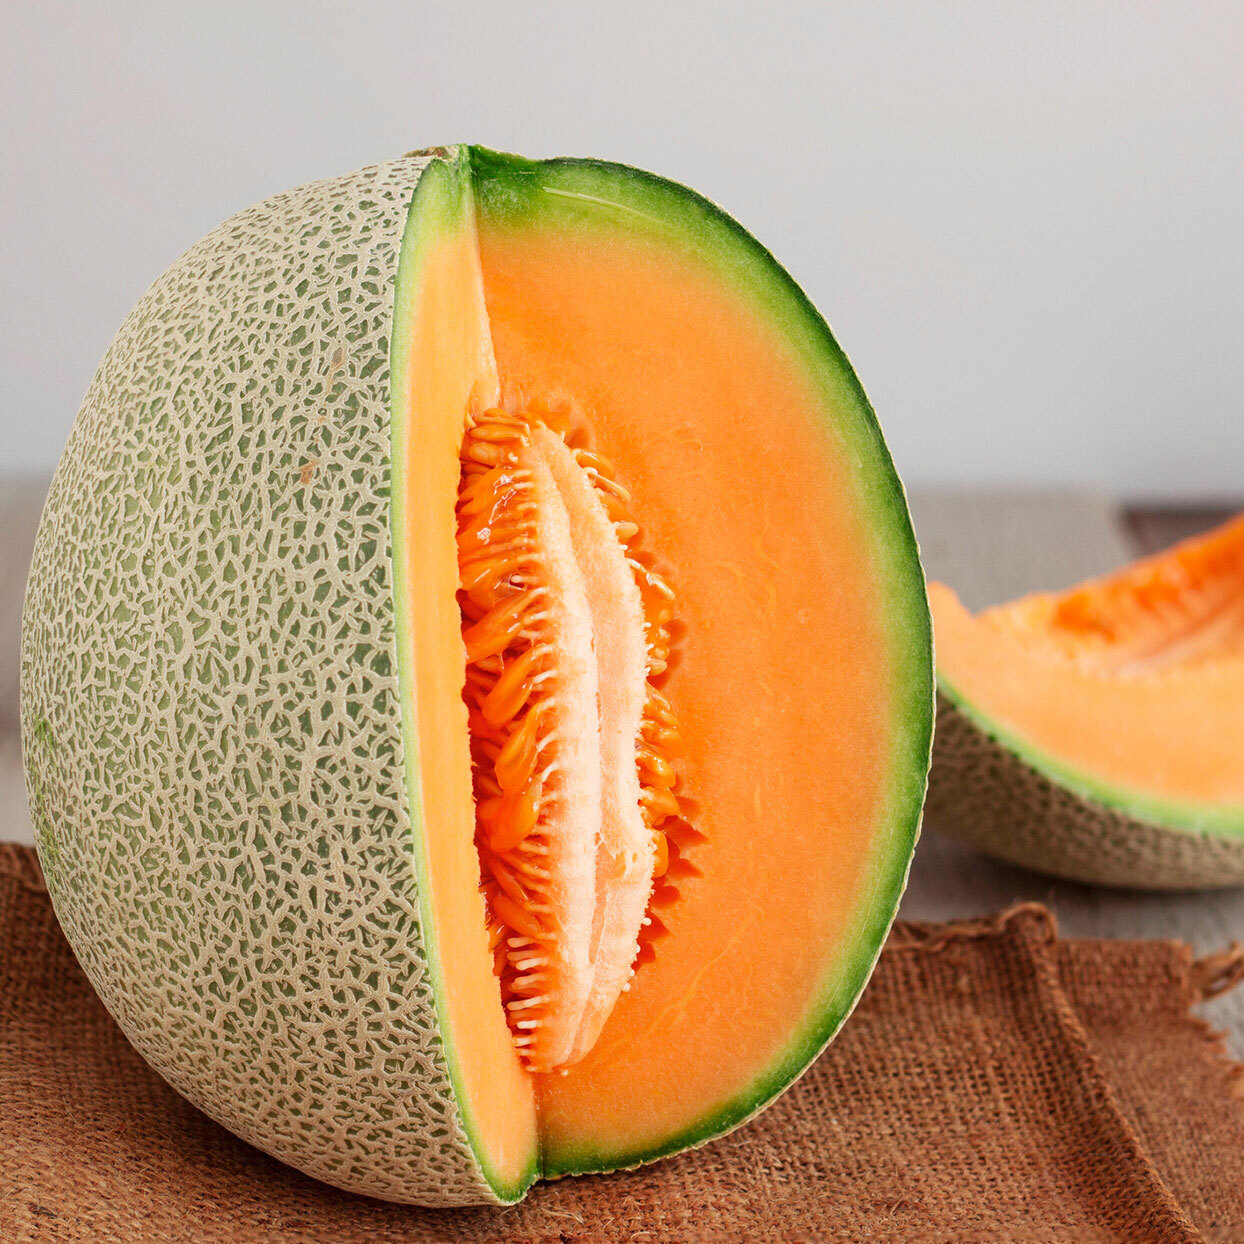 Cantaloupe For Diabetics / Does anyone know just how much sugar is in a fresh cantaloupe?